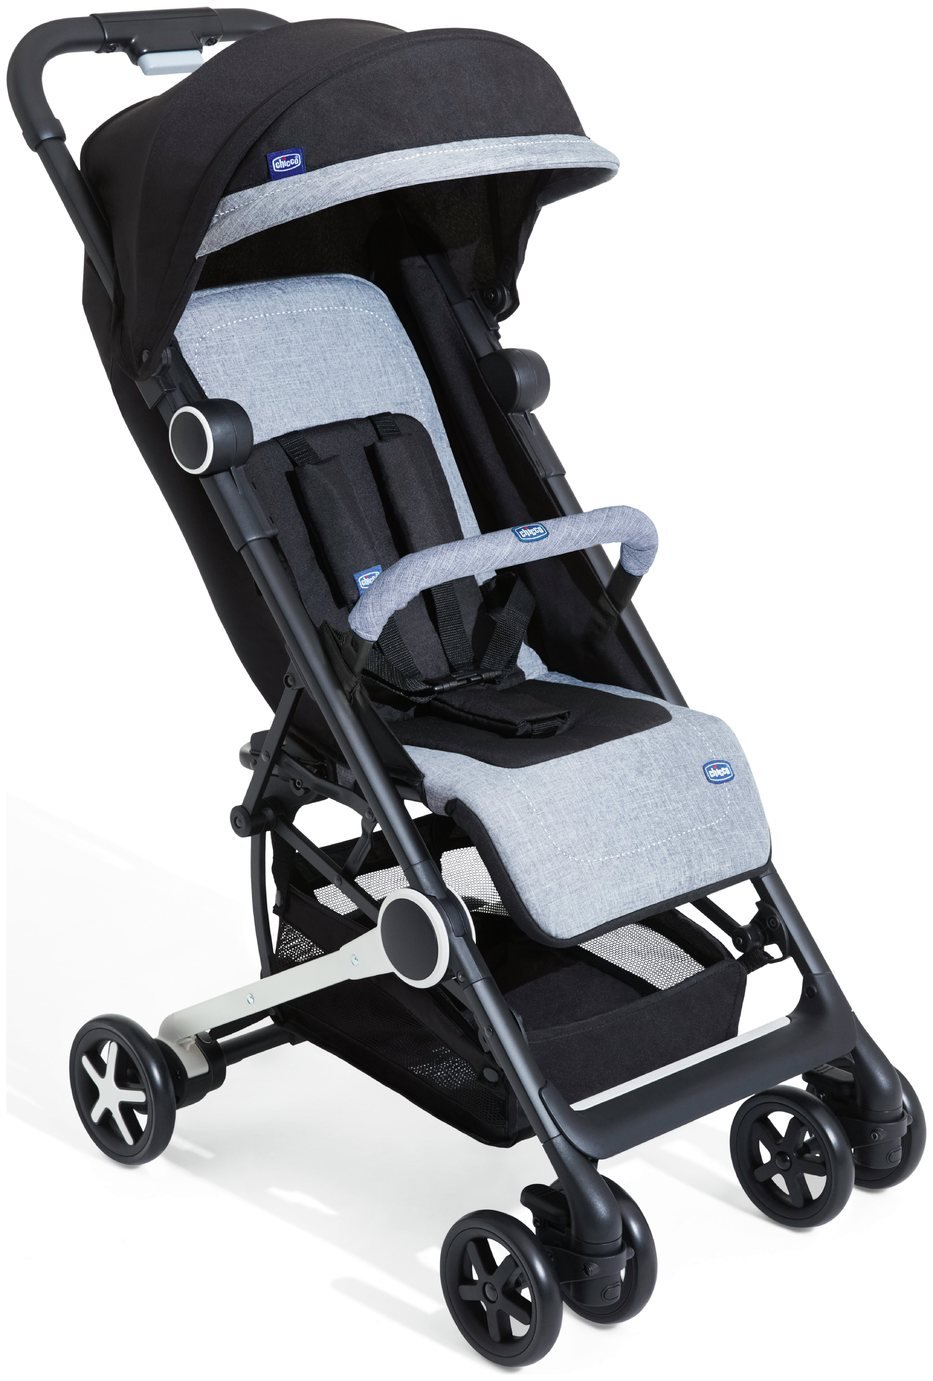 Chicco Minimo Comoact Stroller with Bumper Bar - Black